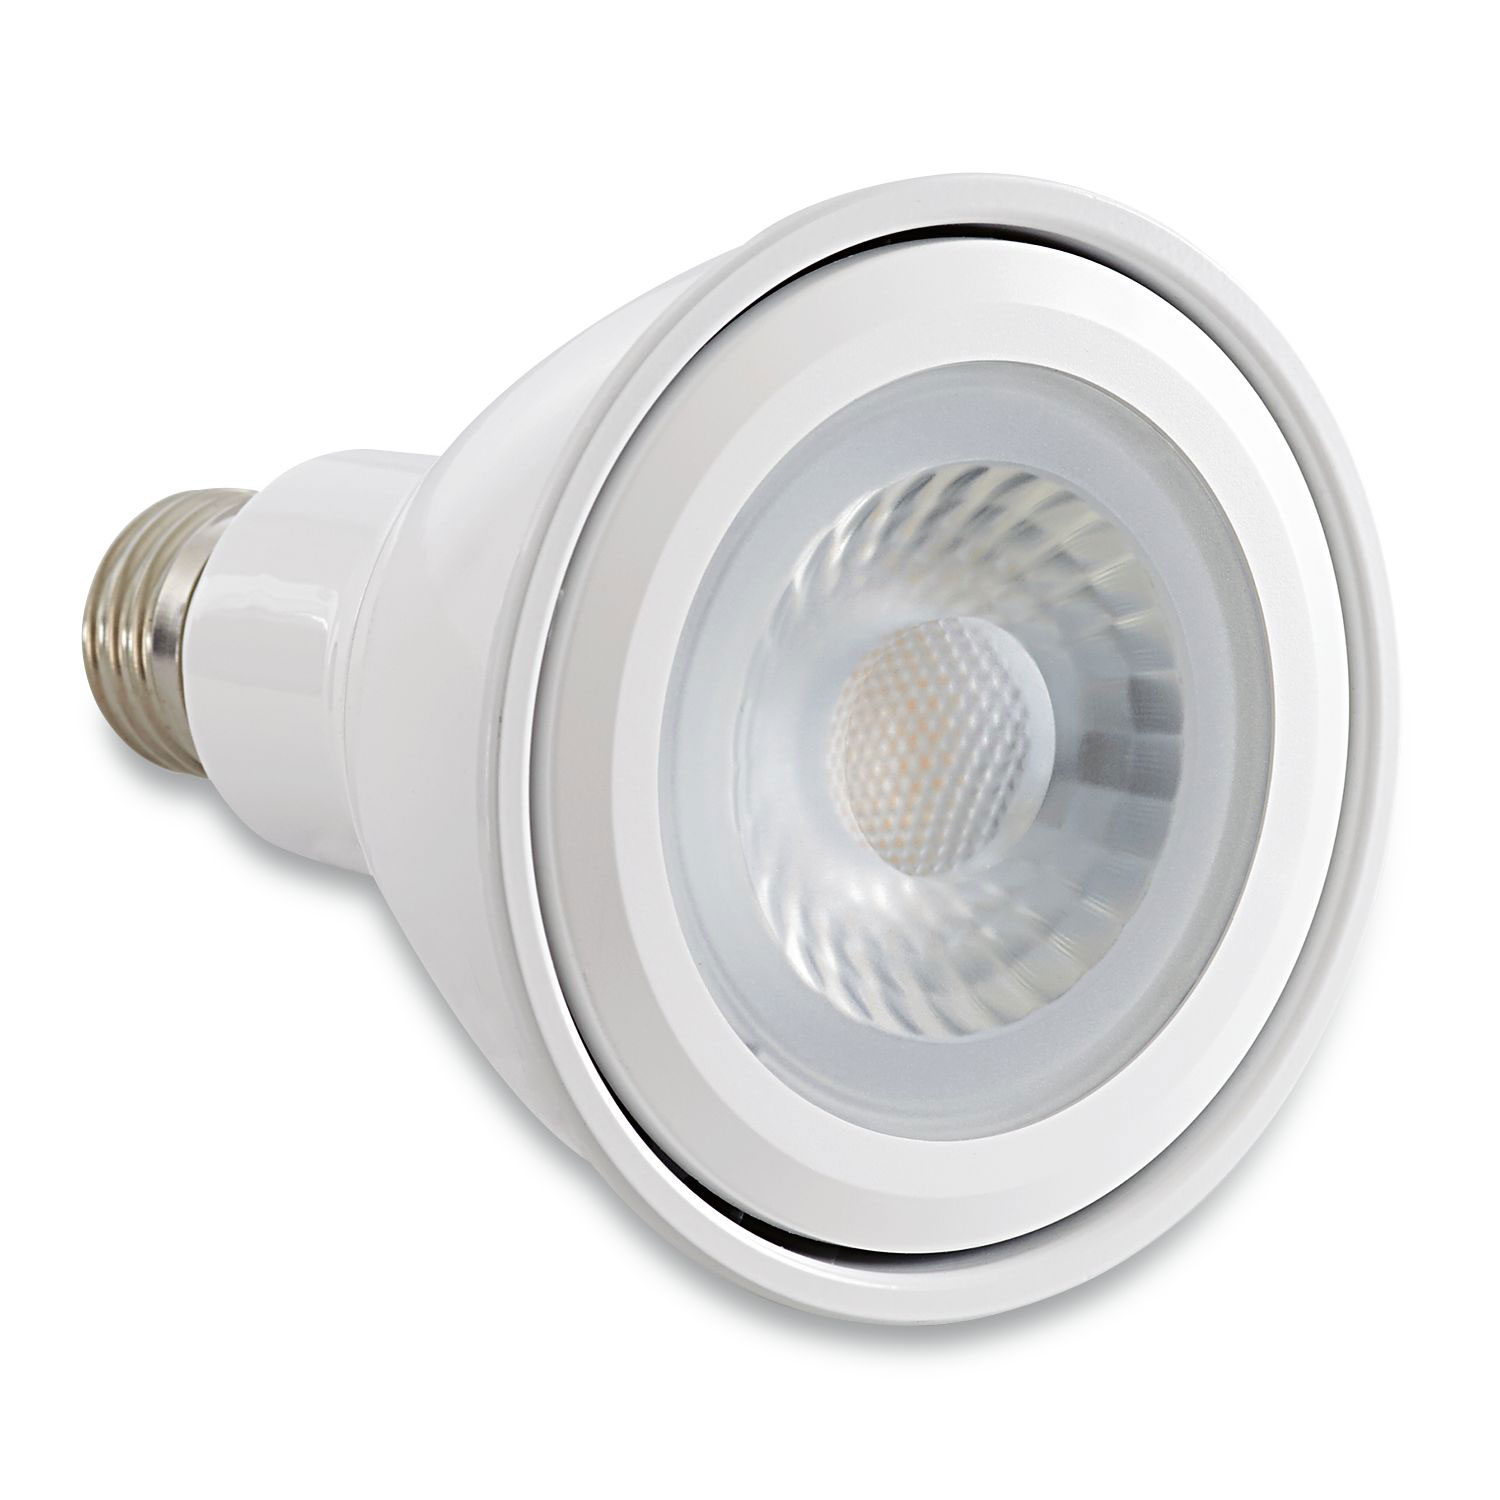 Verbatim, LED, PAR30, High CRI Warm White10W, 3000K, P30-L800-C30-B25-90-W